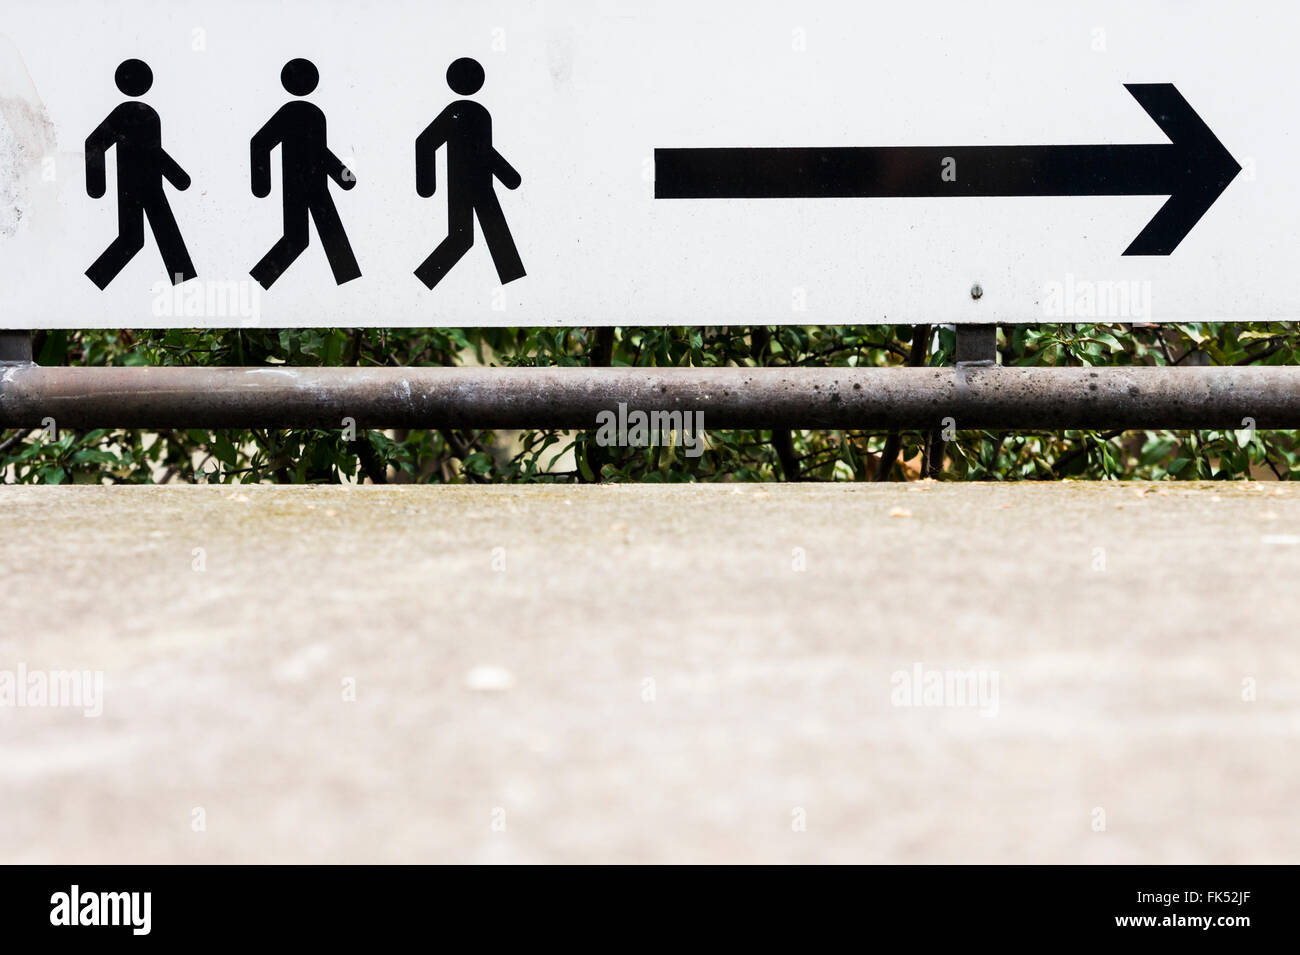 pictogram, silhouettes of three persons following an arrow - Stock Image